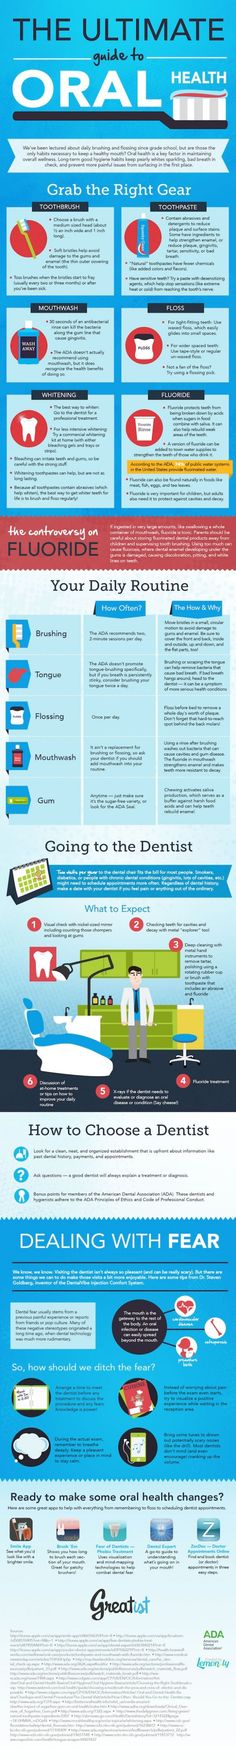 It's National Children's Dental Health Month--get them off to a good start.  #INFOGRAPHIC: THE ULTIMATE GUIDE TO ORAL HEALTH  Good oral health goes far beyond brushing. Here's everything you need to know to keep your mouth clean, healthy, and pearly white.